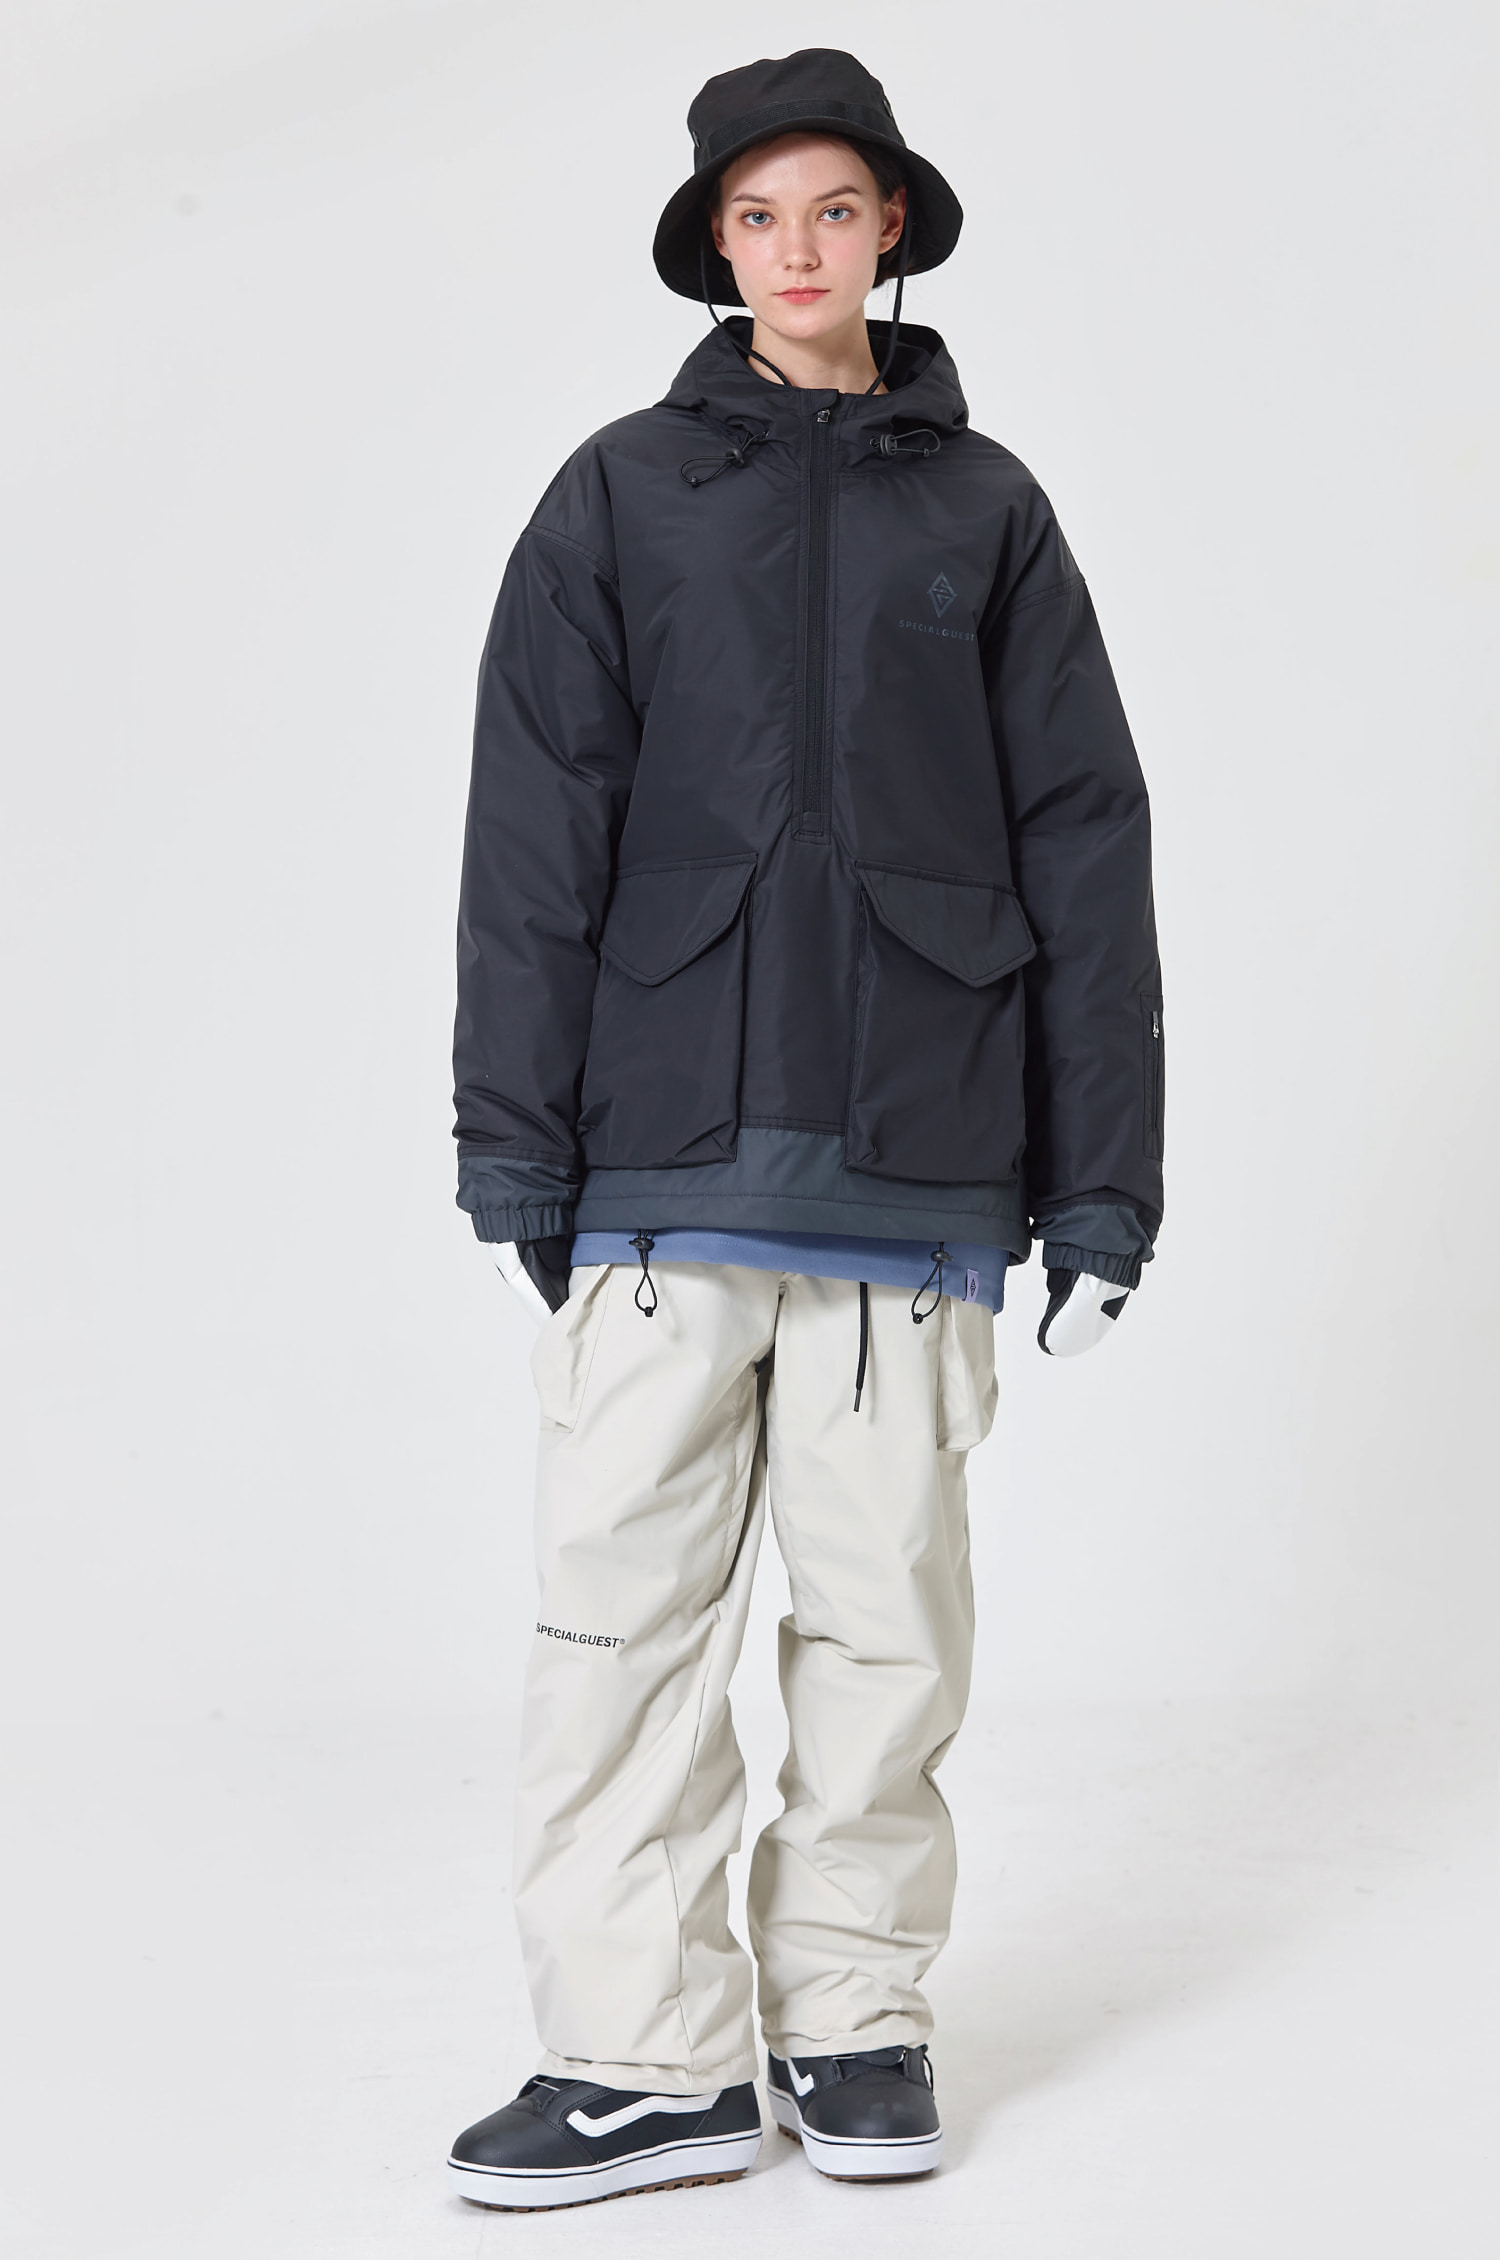 SET 22 - ANORAK / PANTS